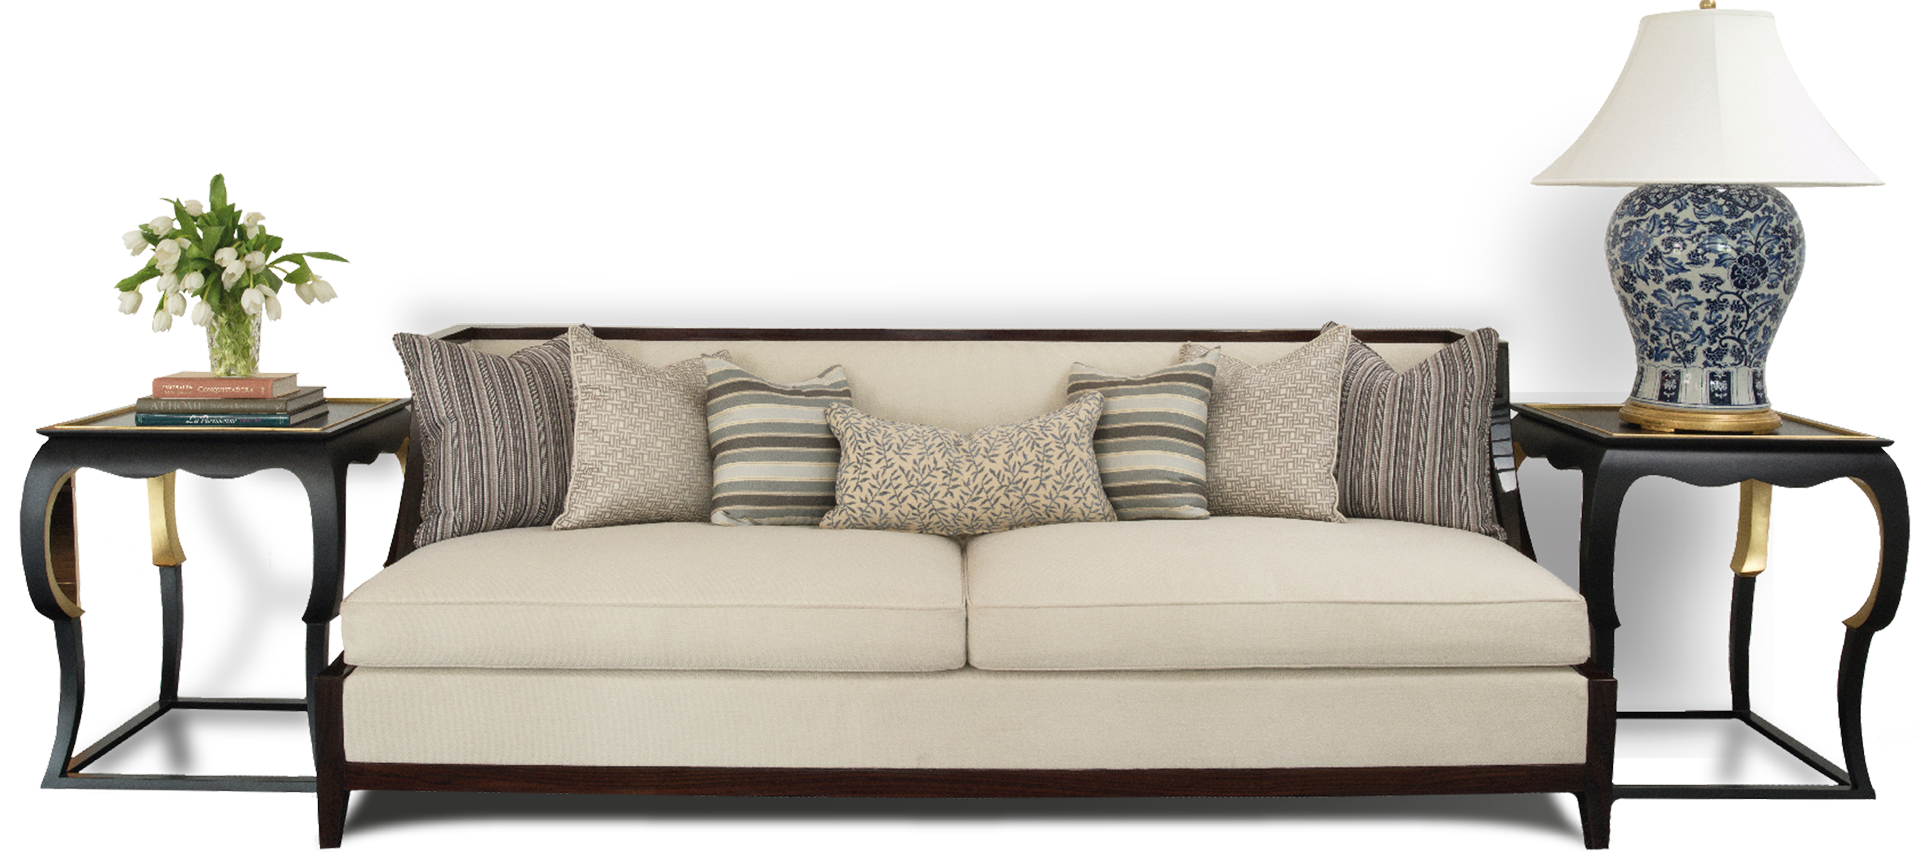 Home furniture png. Rr atelier celebrate luxury